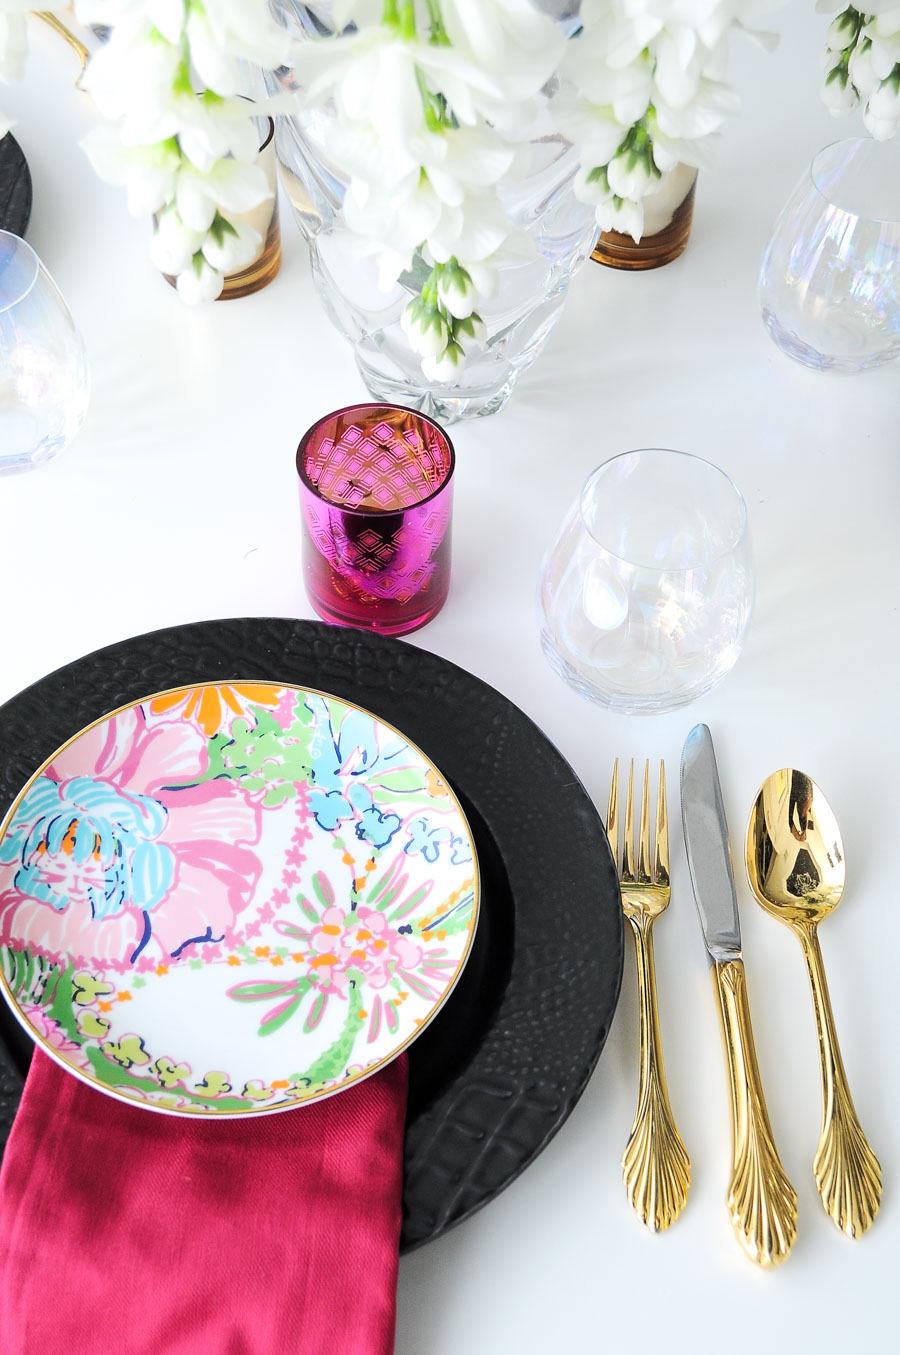 Black plate paired with a Lilly Pulitzer floral dessert plate and gold flatware.